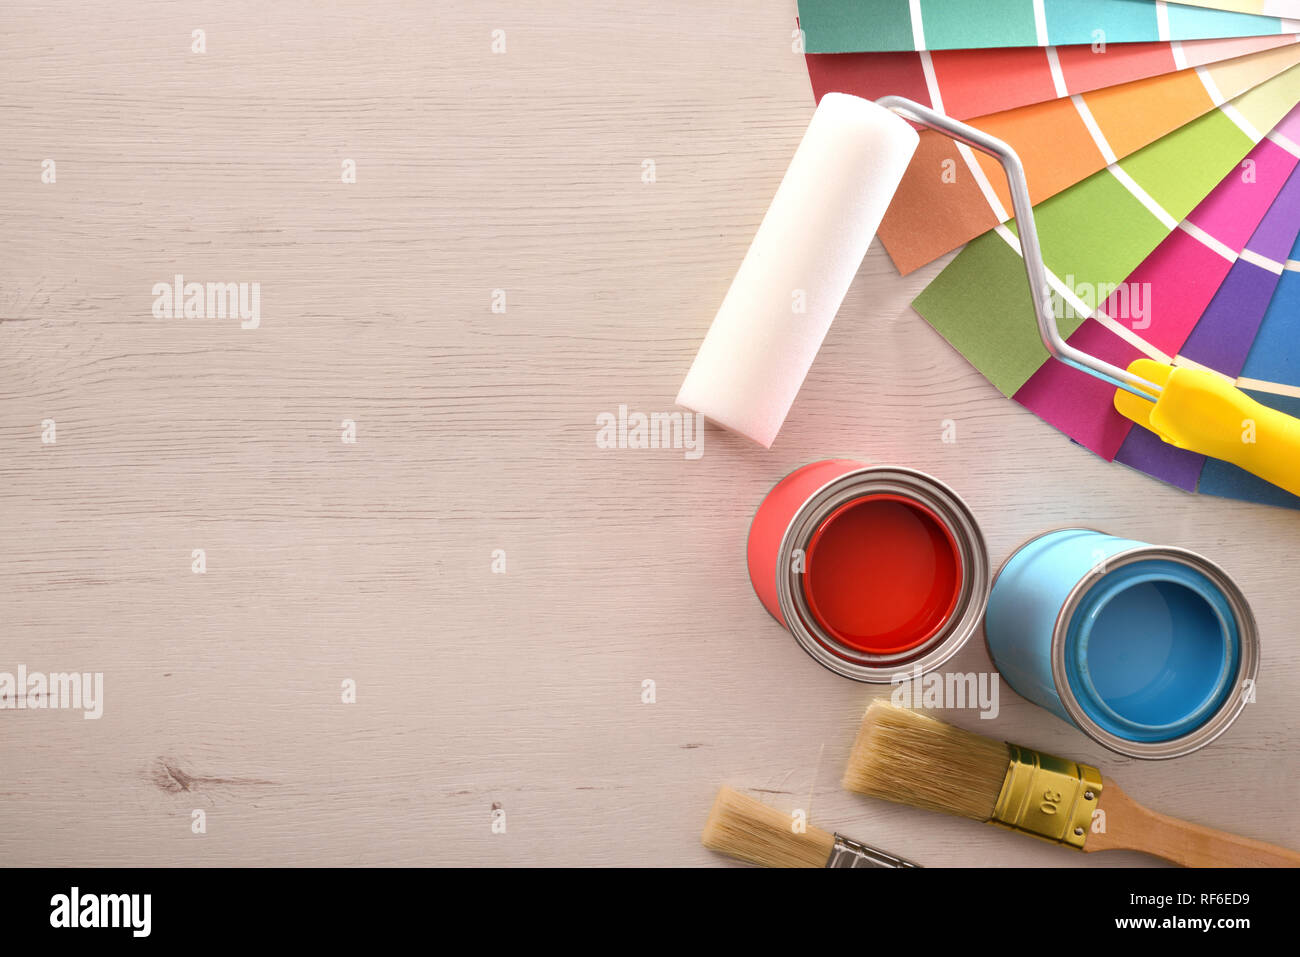 Two red and cyan paint pots open and color palette on wood table for renovation of materials. Top view. Horizontal composition. Stock Photo